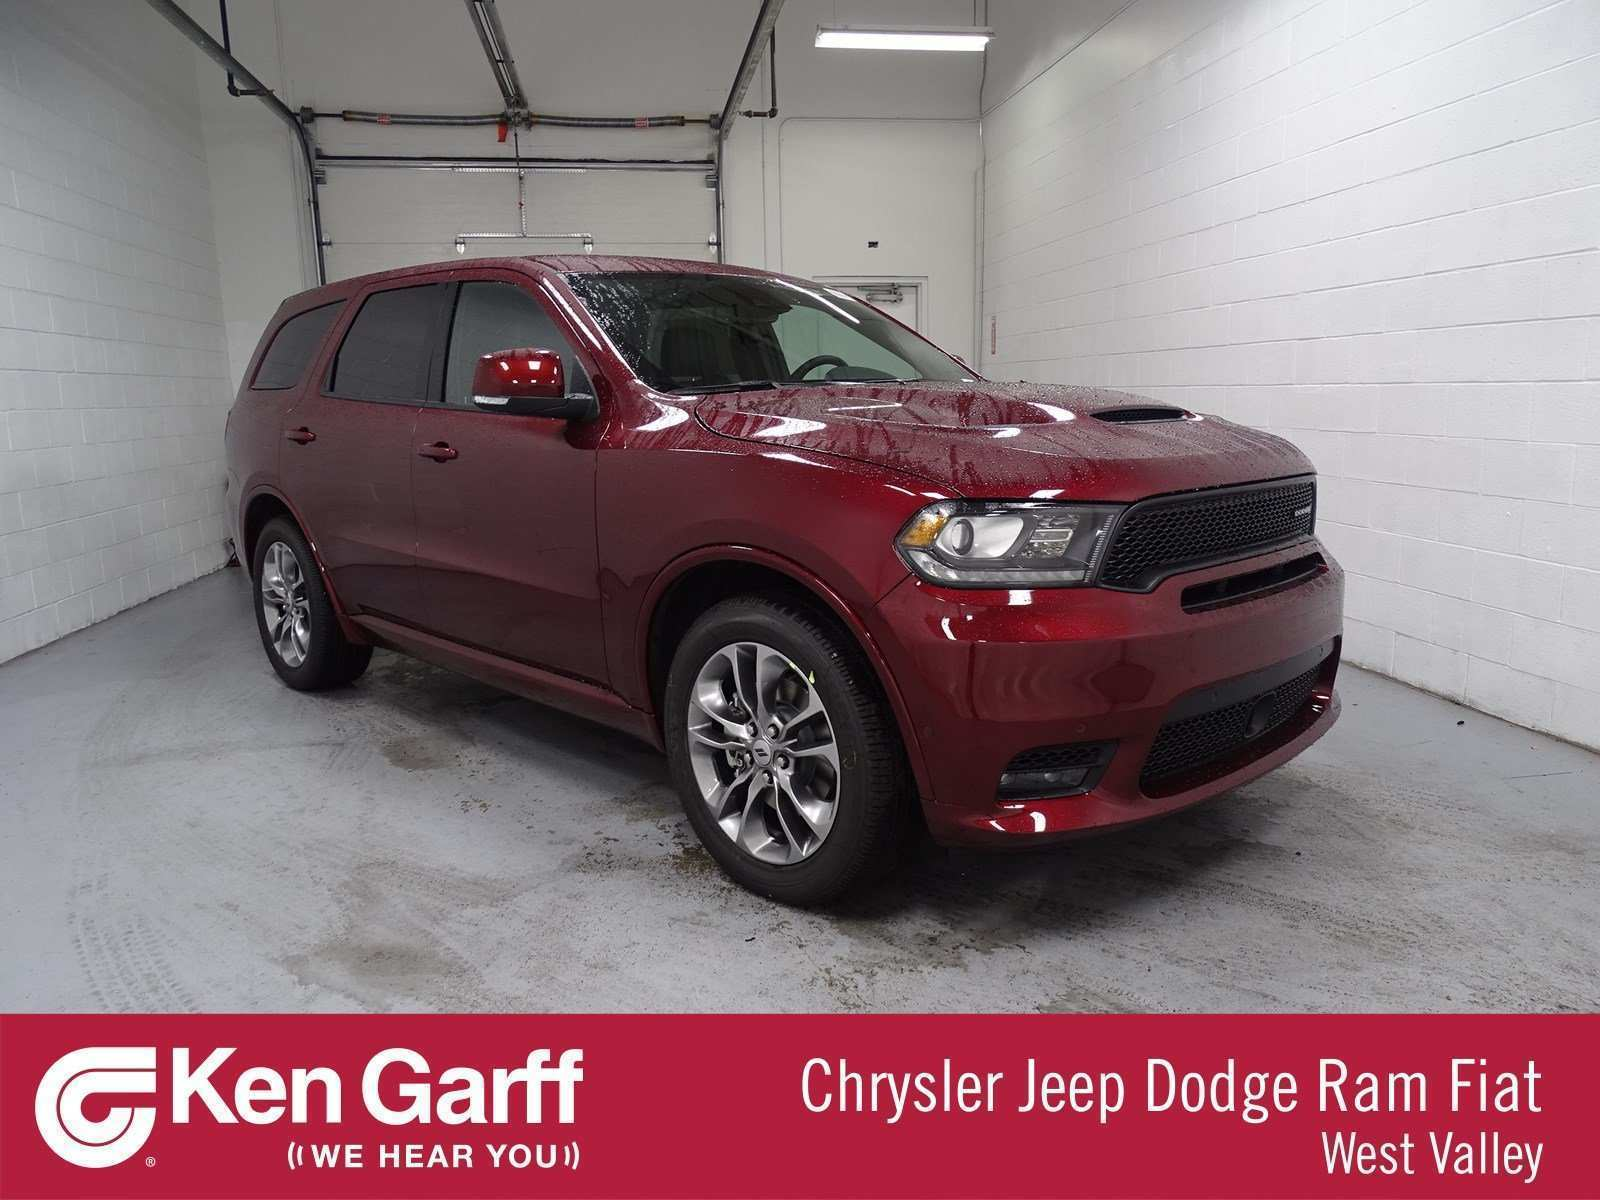 62 New 2019 Dodge Durango Photos for 2019 Dodge Durango